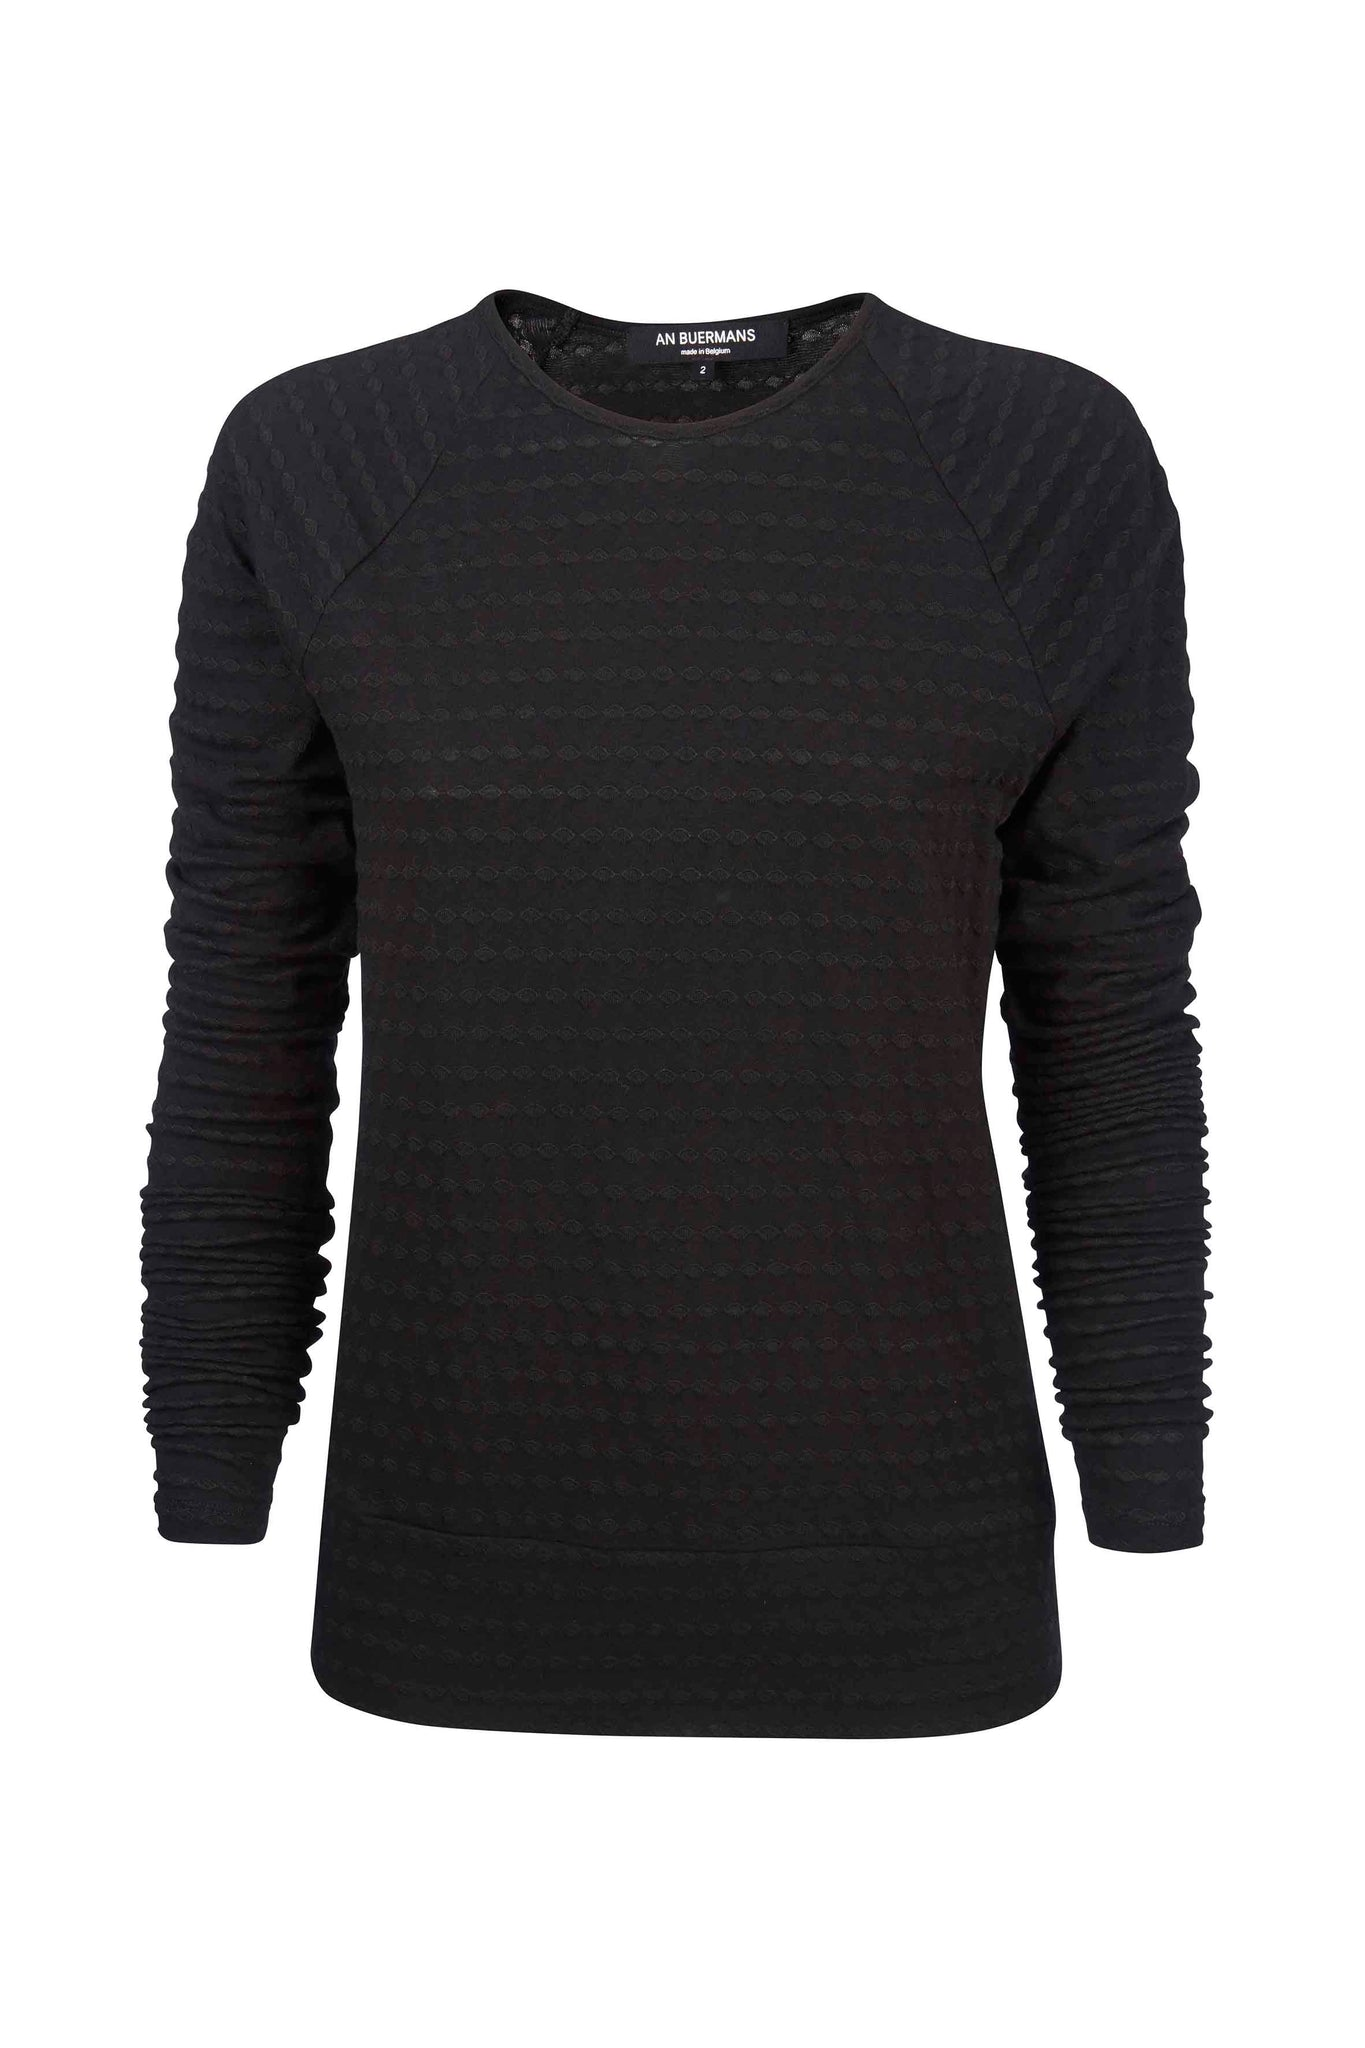 ANNIE long sleeve Black